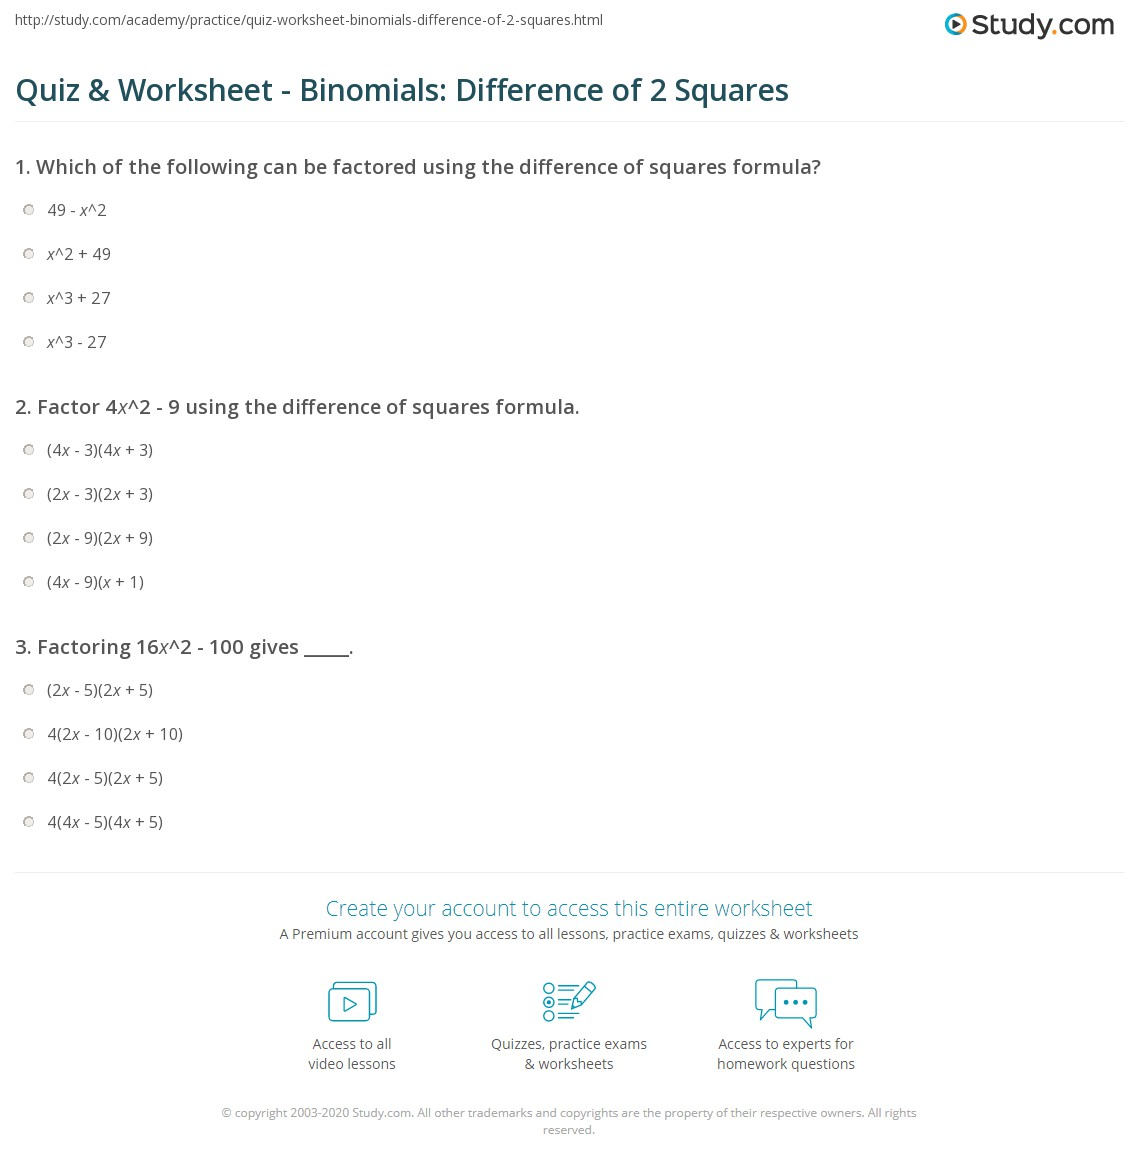 Quiz Worksheet Binomials Difference of 2 Squares – Difference of Two Squares Worksheet